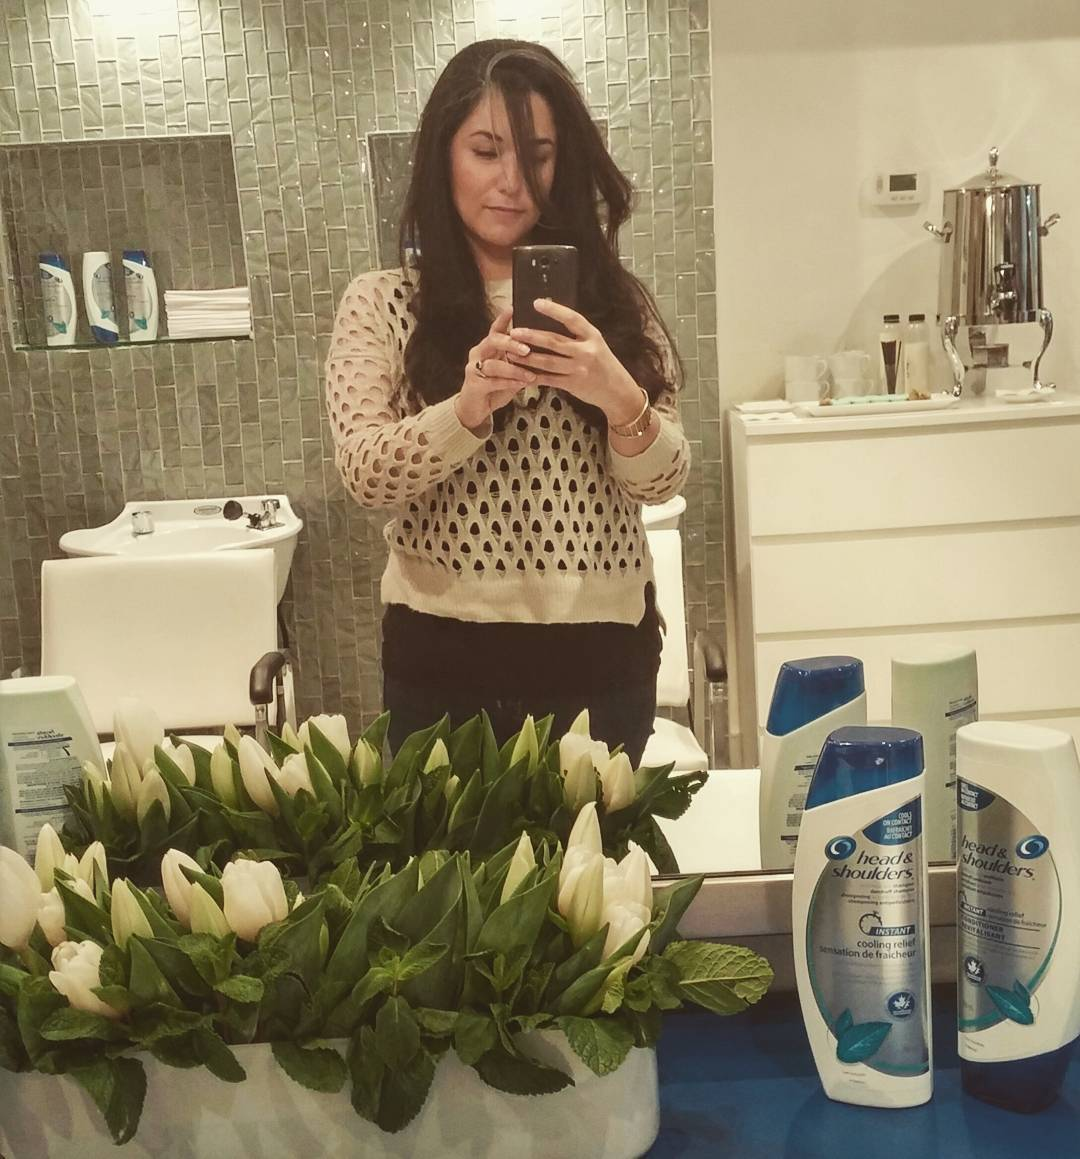 Reeults from yesterdays @headshoulders #coolingrelief launch - smooth happy hair!